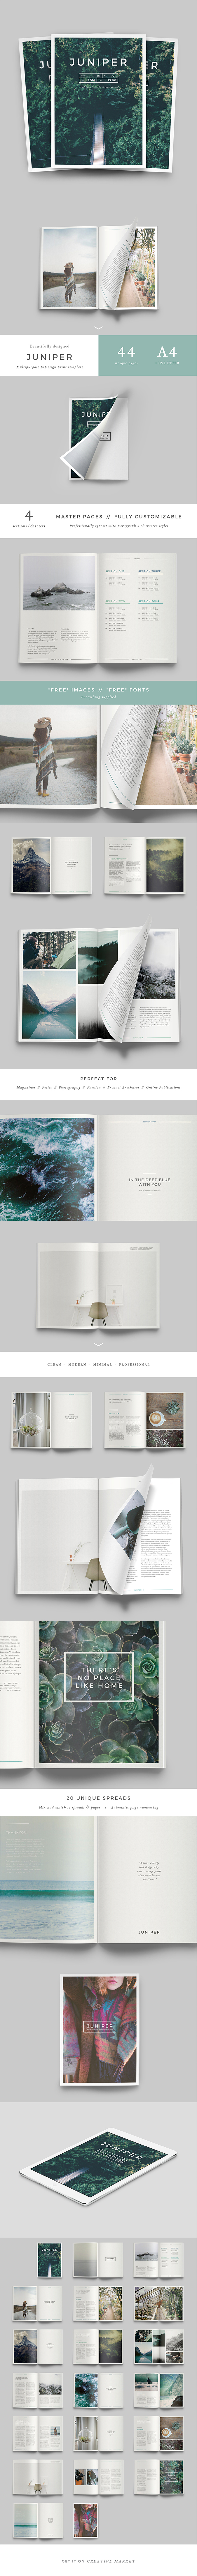 J U N I P E R Magazine  Portfolio Book Design Https